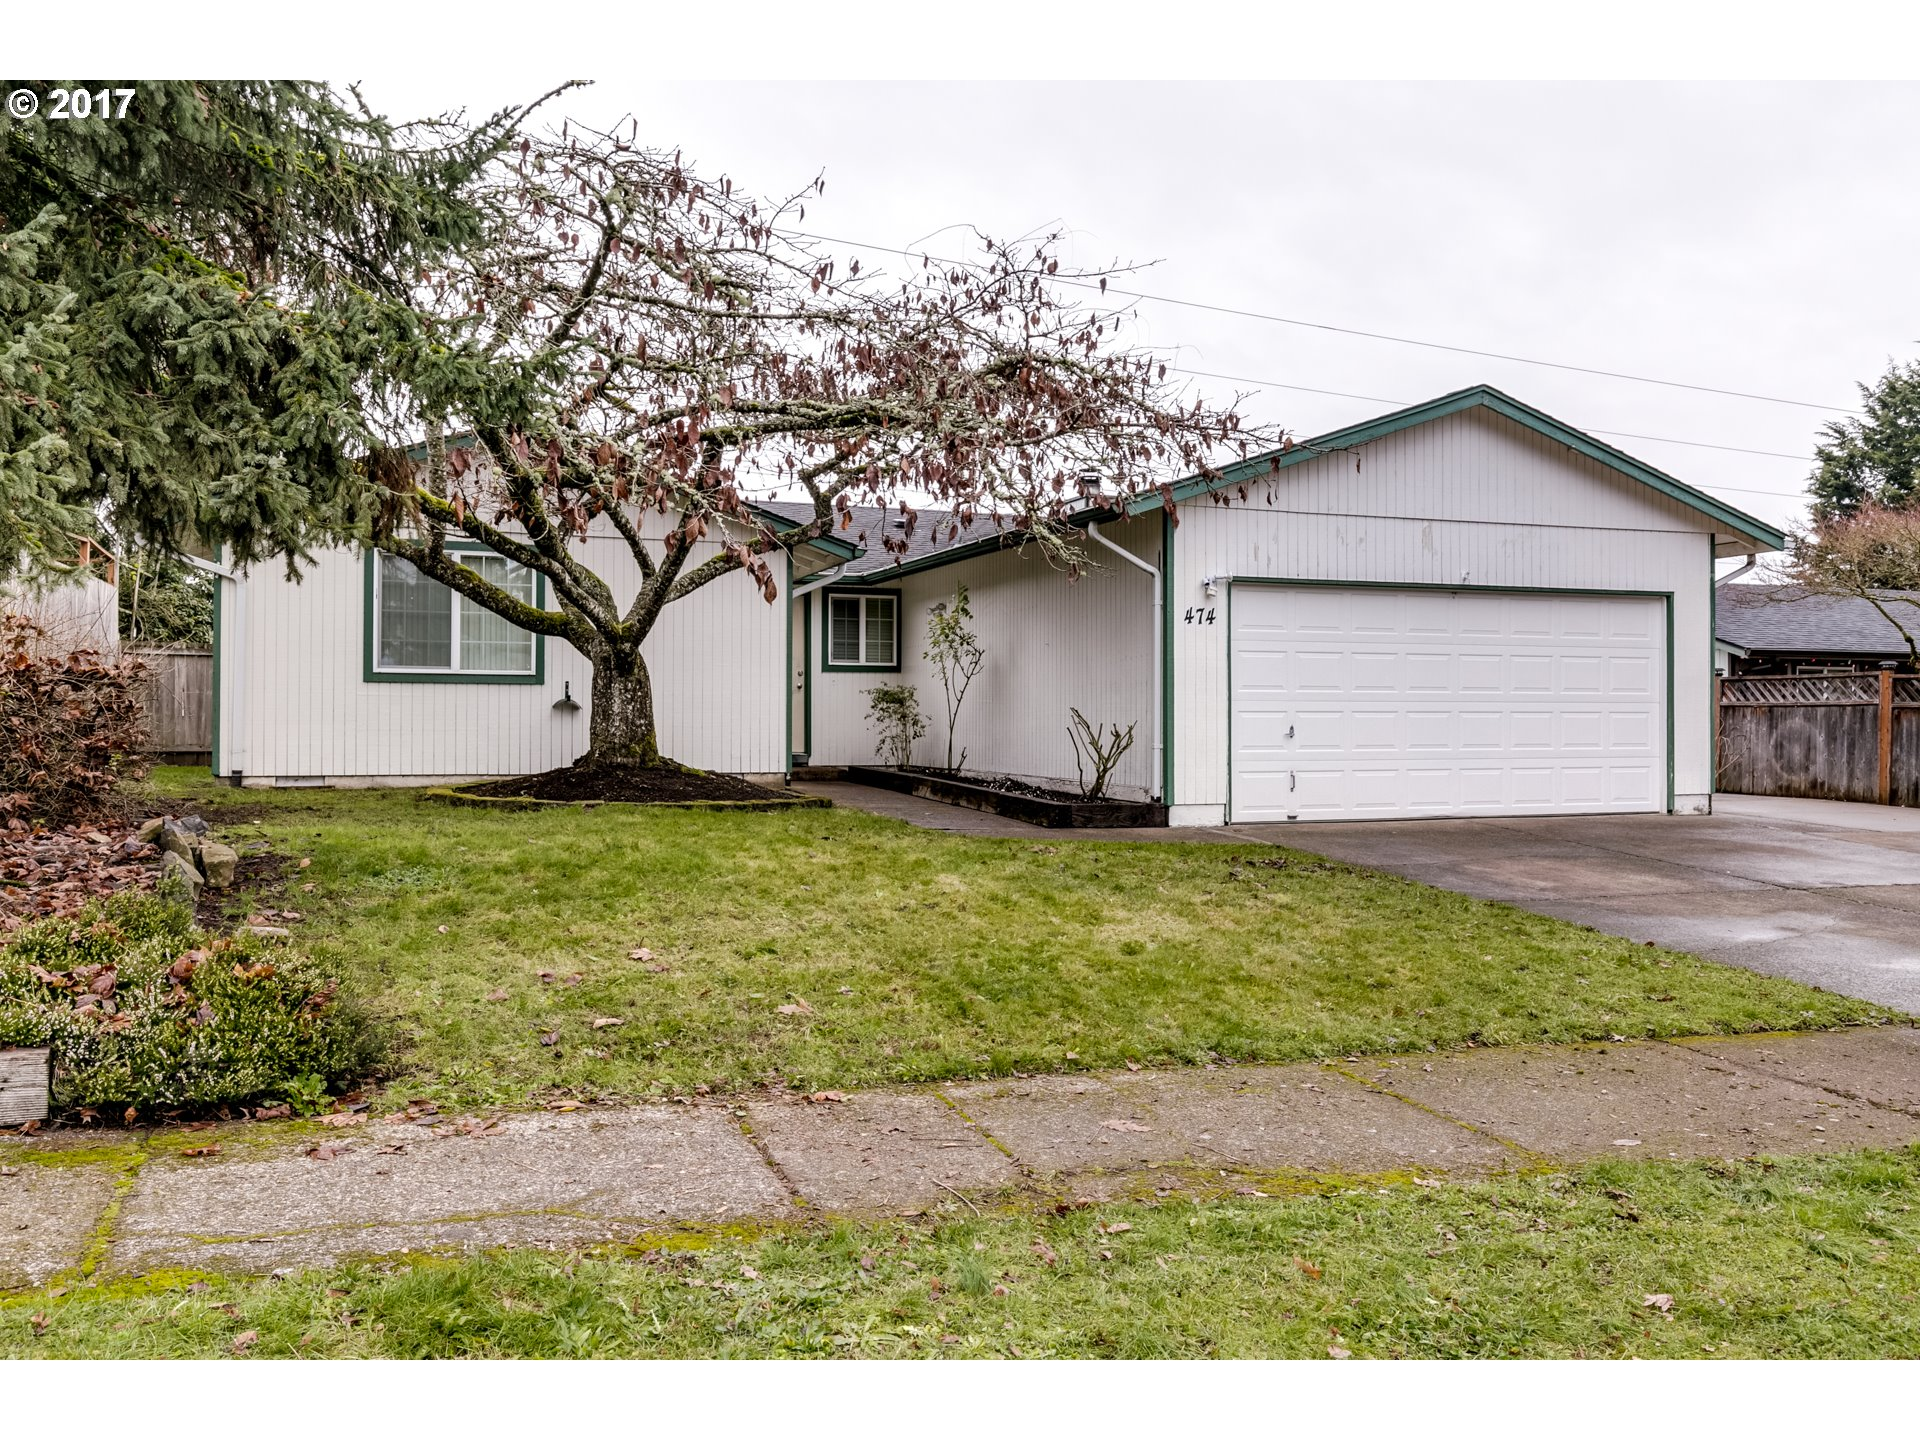 474 56TH ST, Springfield OR 97478